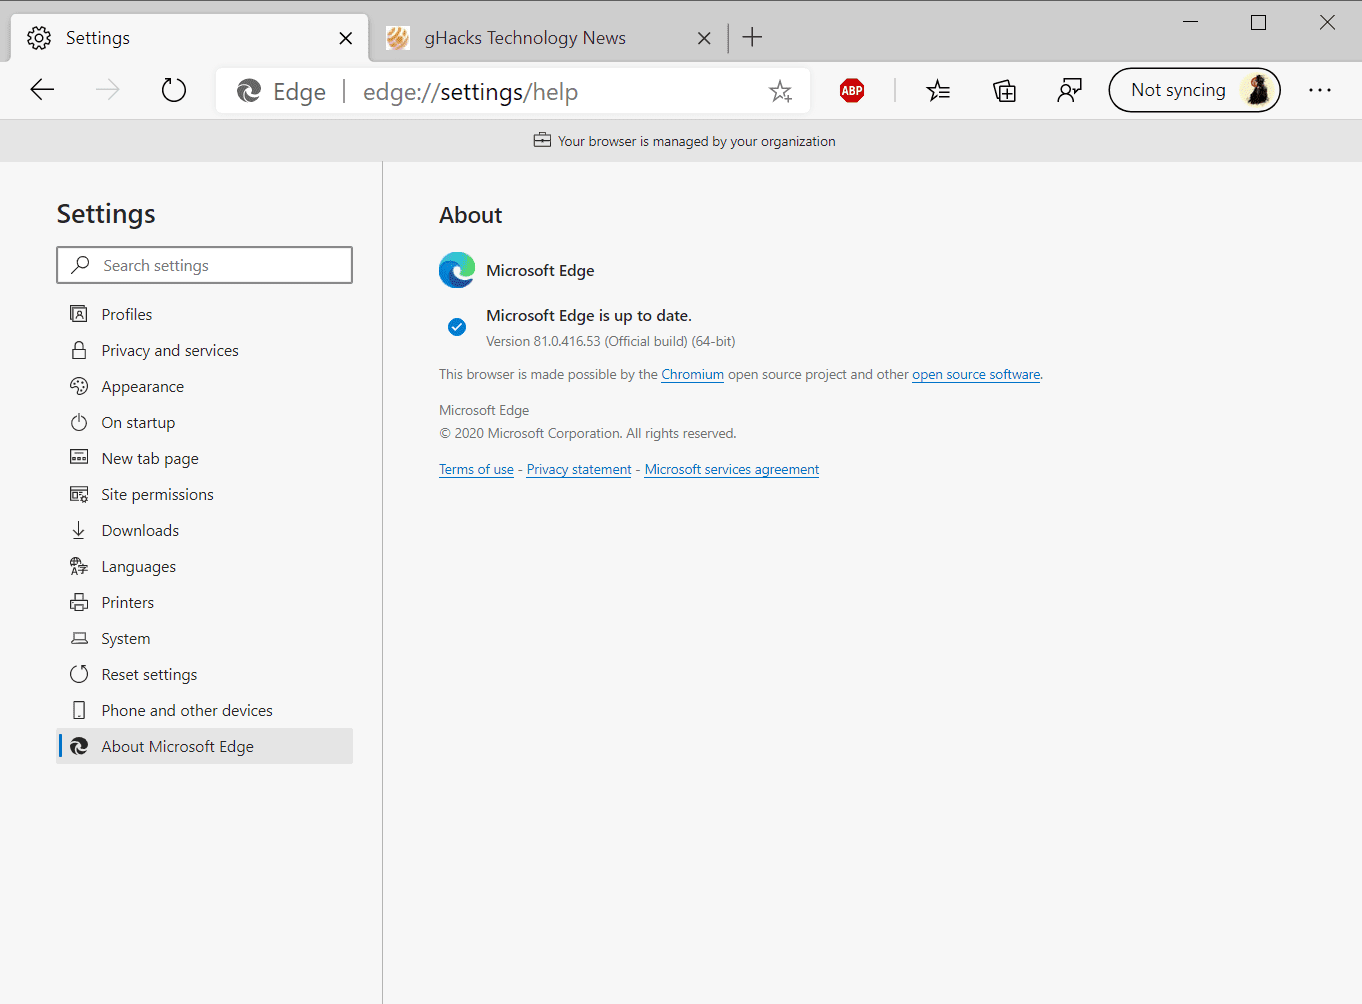 Microsoft Edge 81.0.416.53 Stable out with many changes